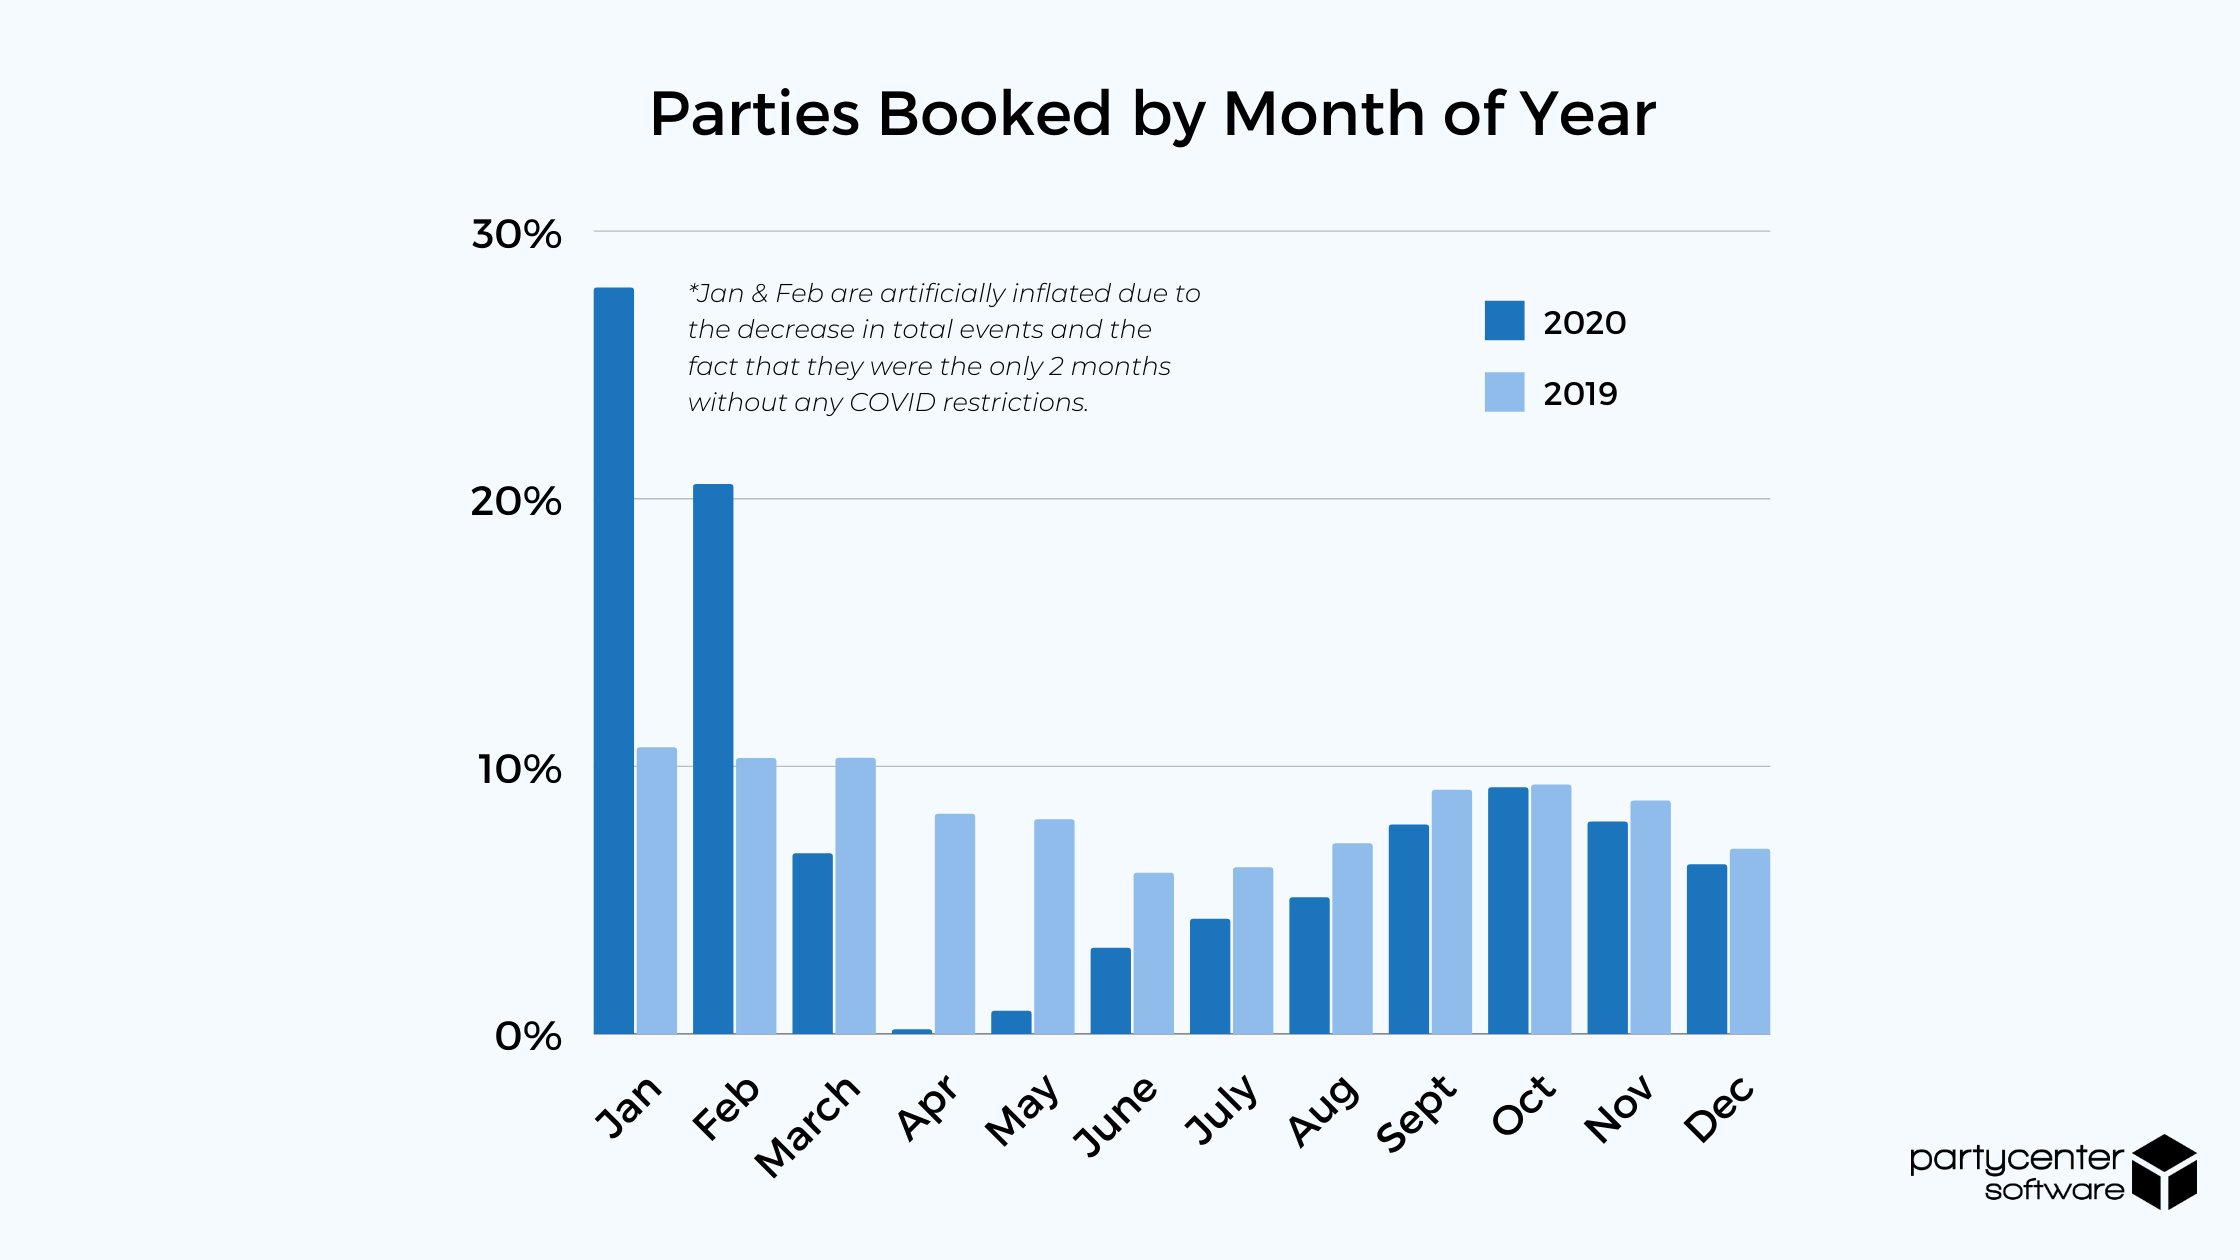 Parties Booked by Month of Year - 2020